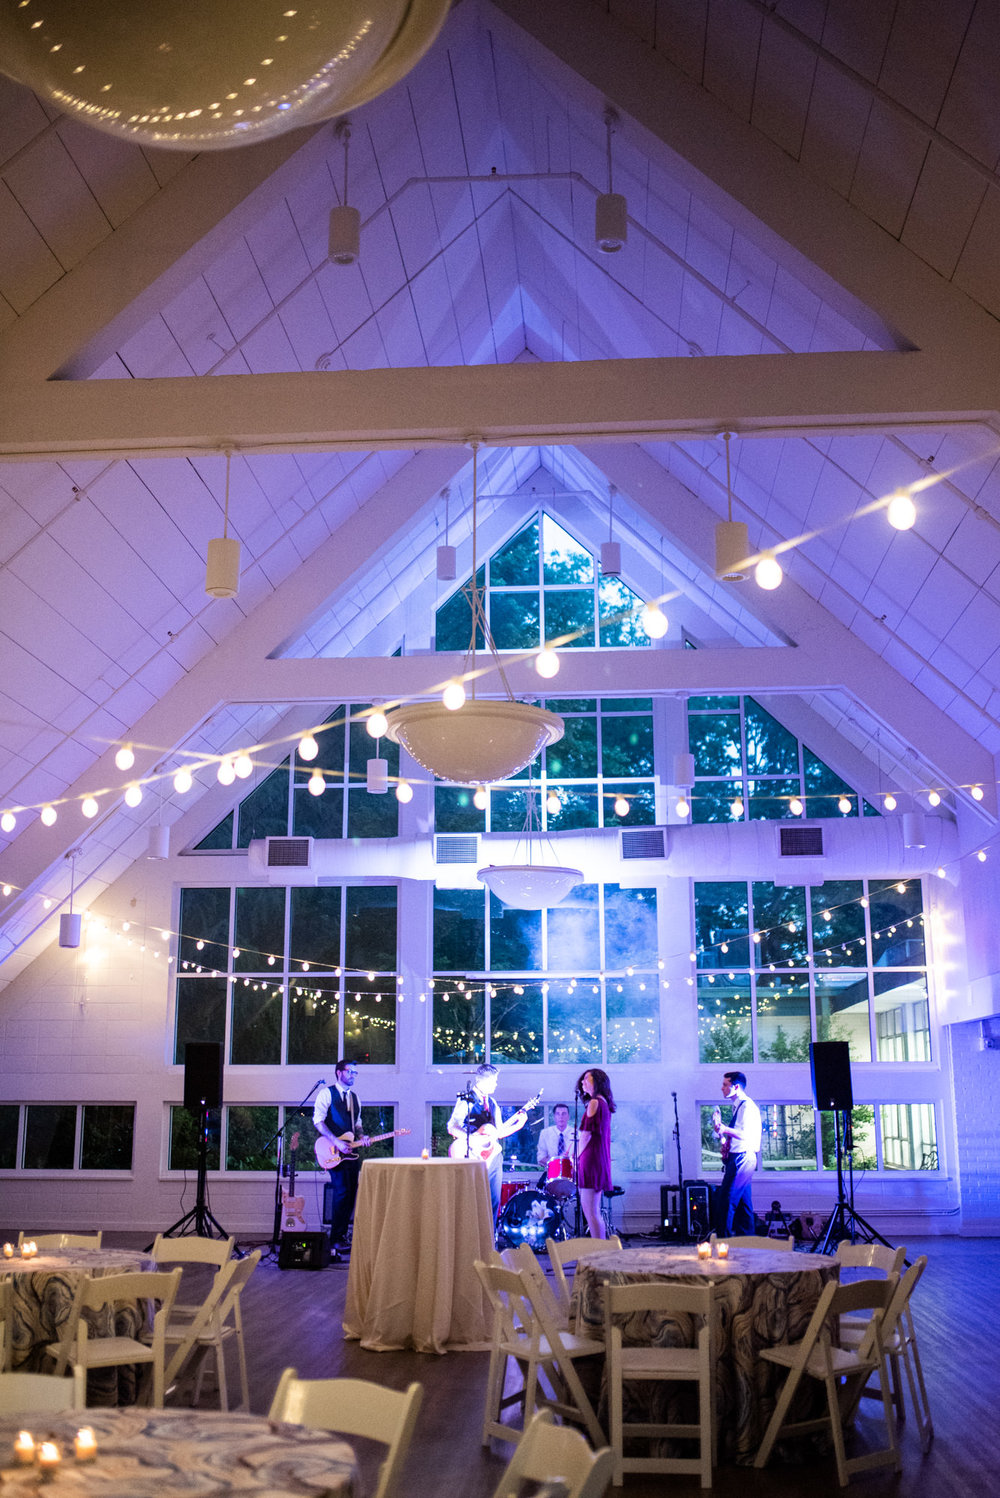 Atlanta-wedding-reception-venue-37.jpg